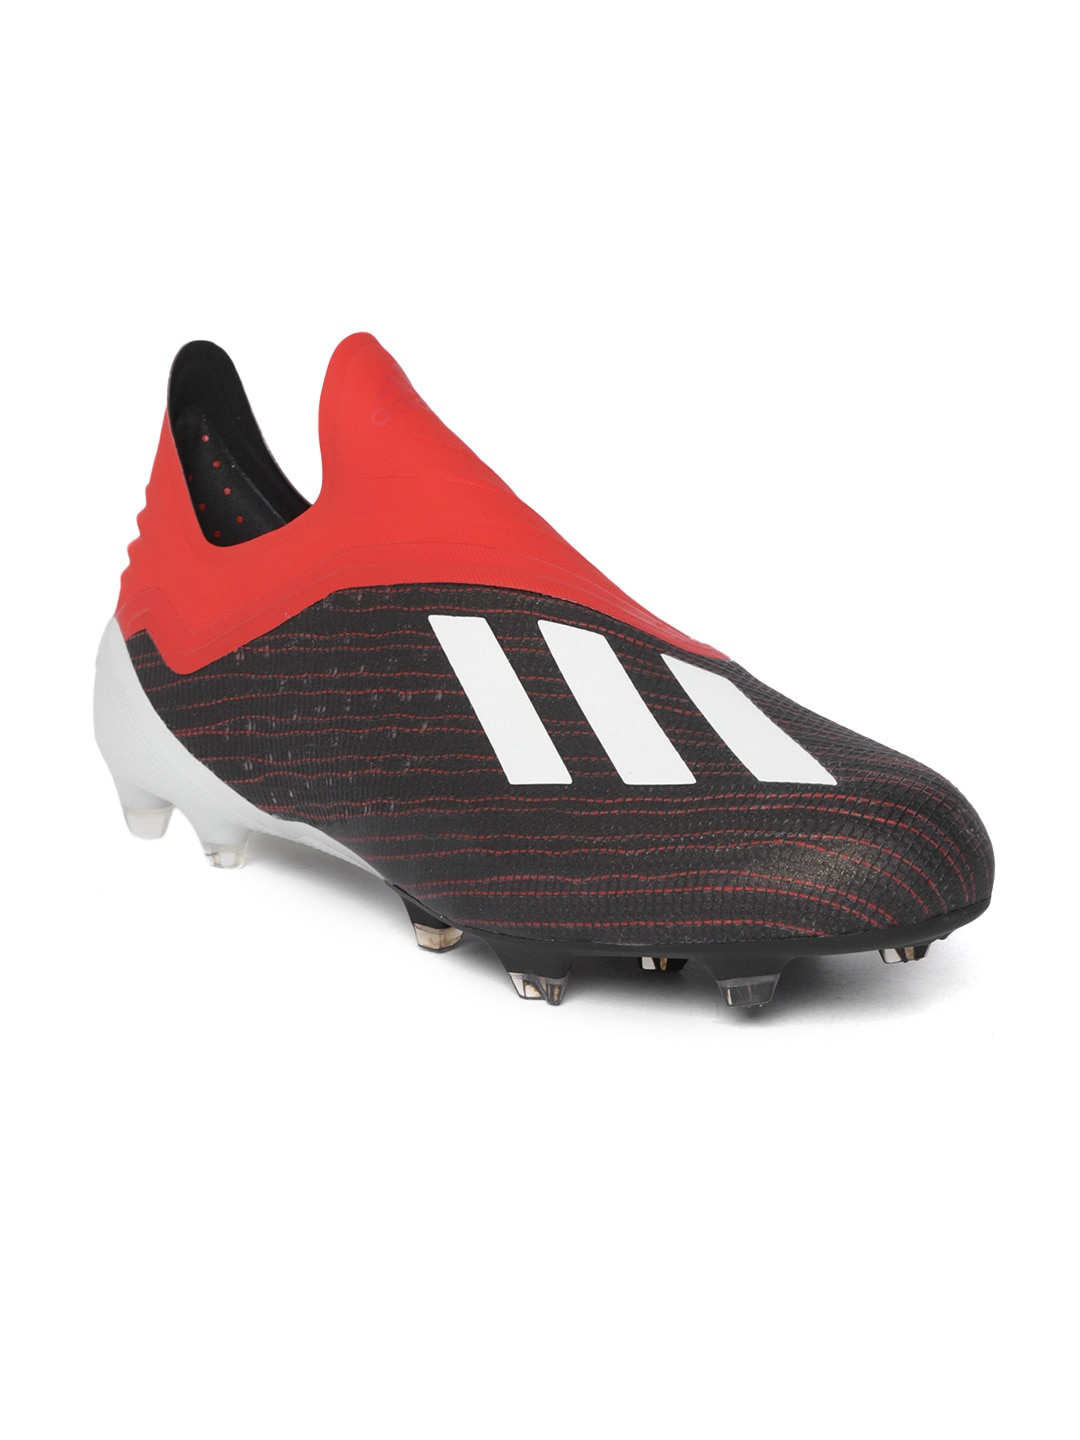 954c06057 Adidas Football Shoes - Buy Adidas Football Shoes for Men Online in India